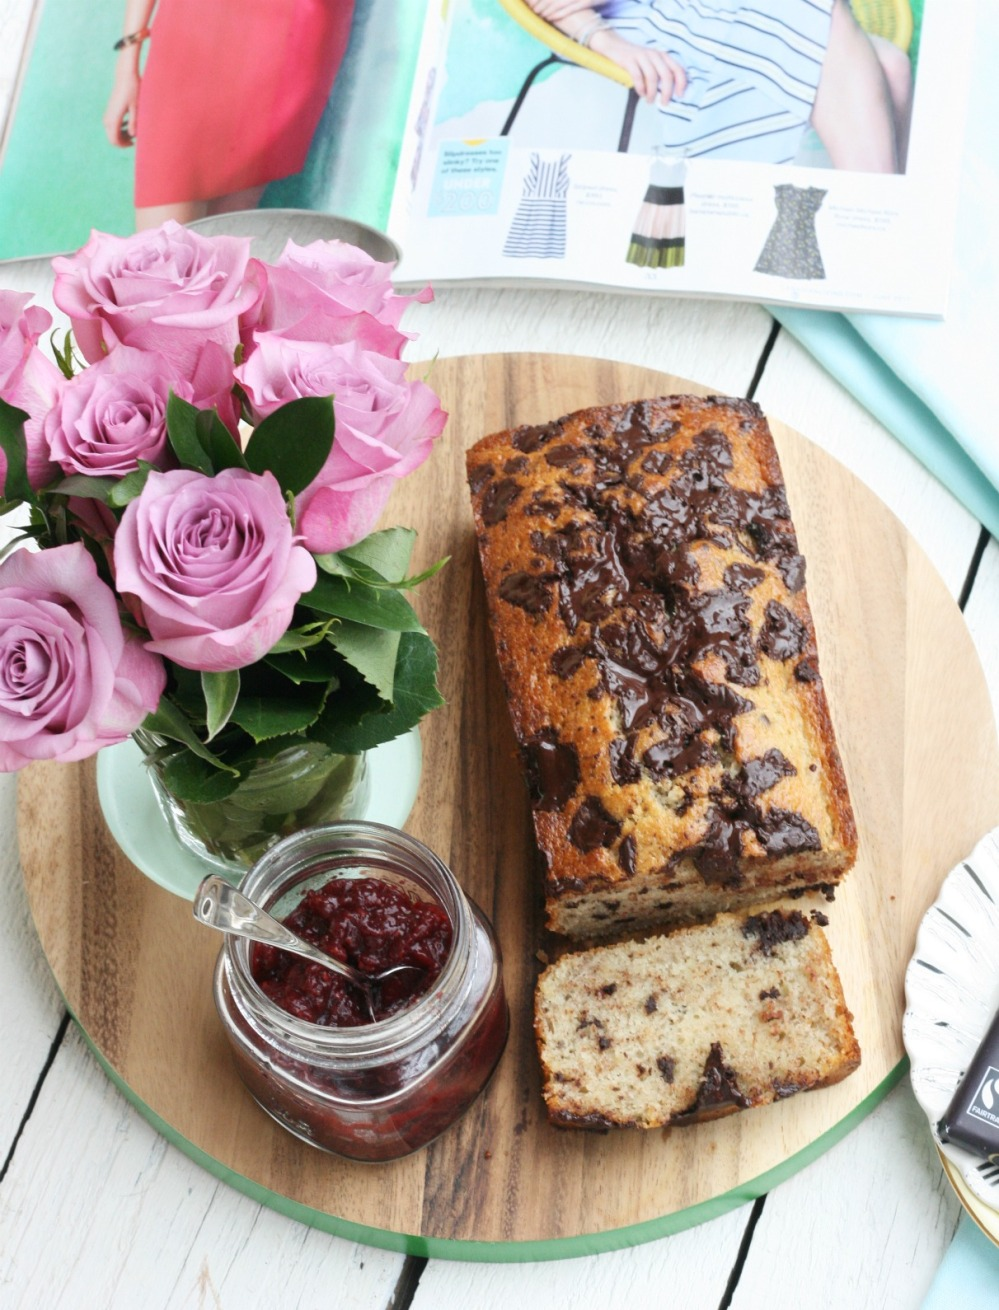 Green and Black's Farmhouse Chocolate Banana Bread full loaf try small things